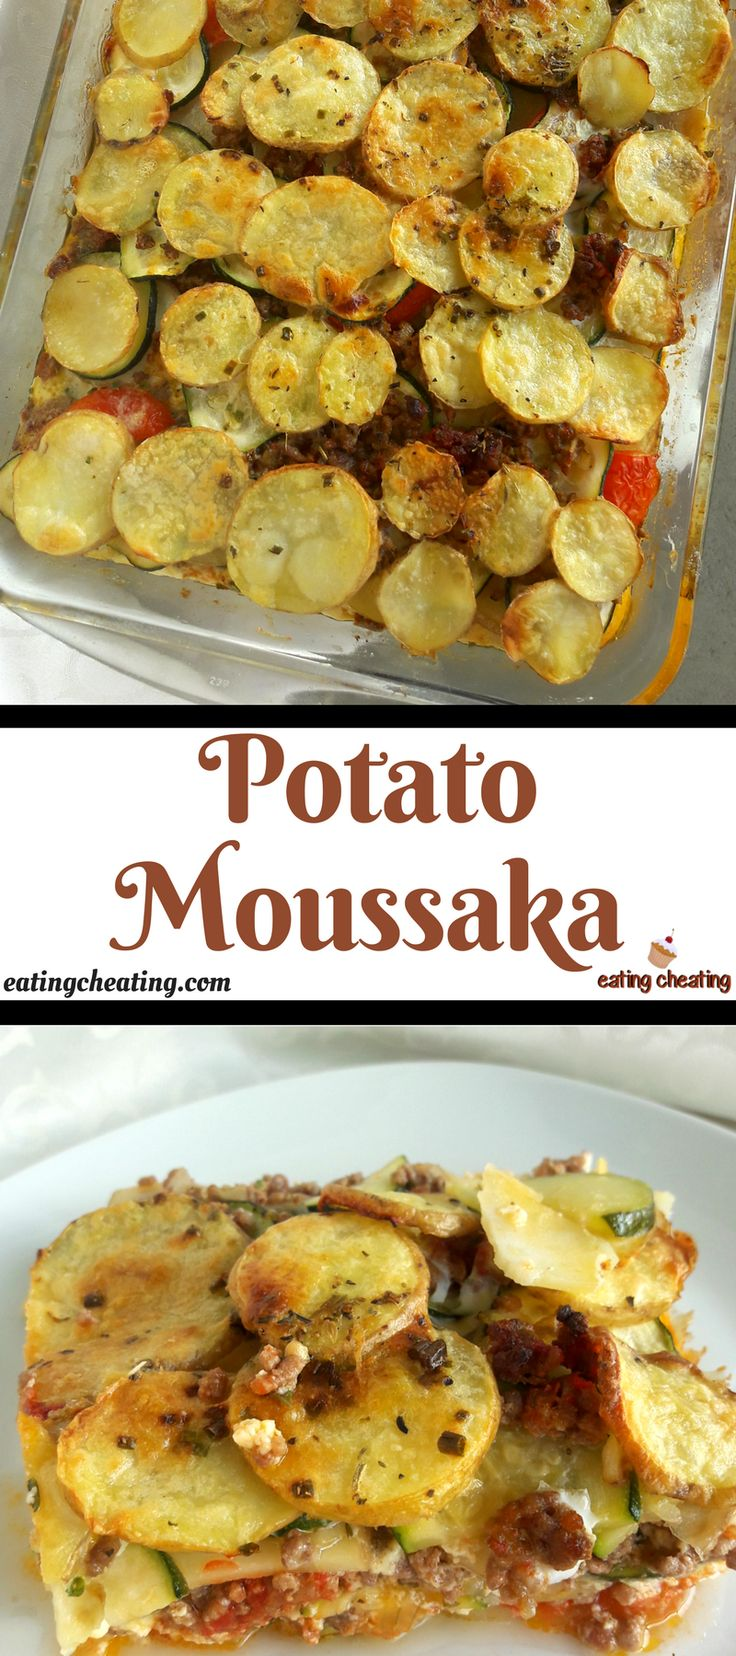 For this post I prepared easy and delicious moussaka recipe. This potato moussaka is a great recipe for this cold weather. For this potato mousakka I used beautiful potatoes, some fresh tomatoes and zucchini and a ground beef. Everything was poured with mixture of eggs and heavy cream.